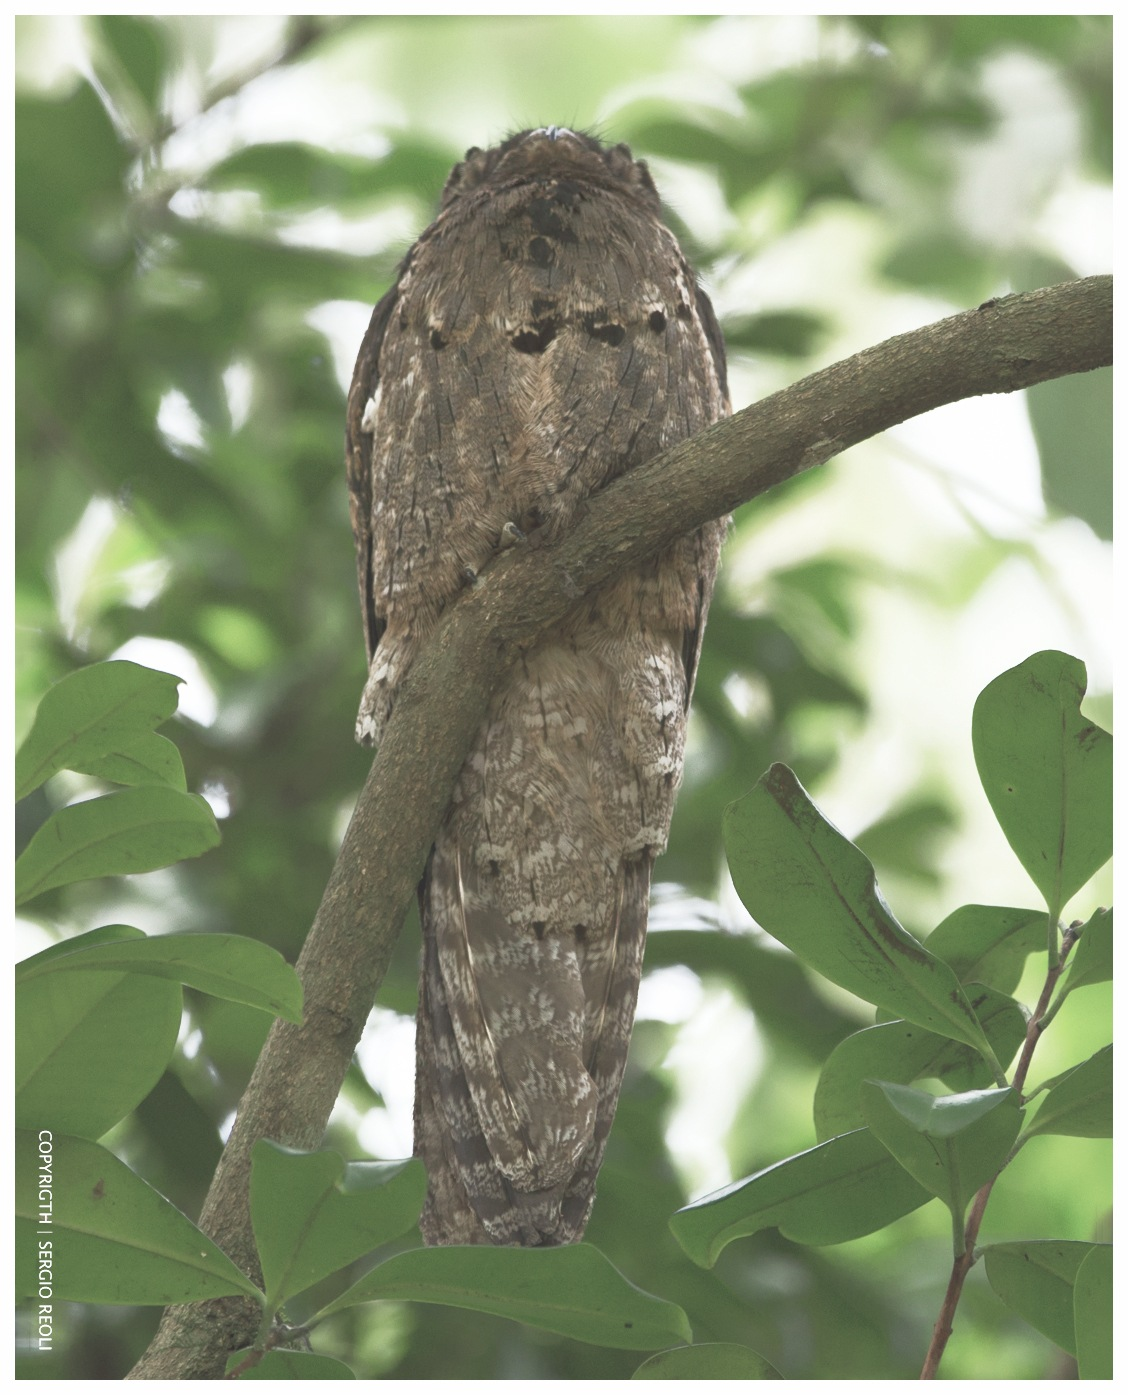 Urutau or mother-of-the-moon (Nyctibius griseus) by  ®Sergio ReOli